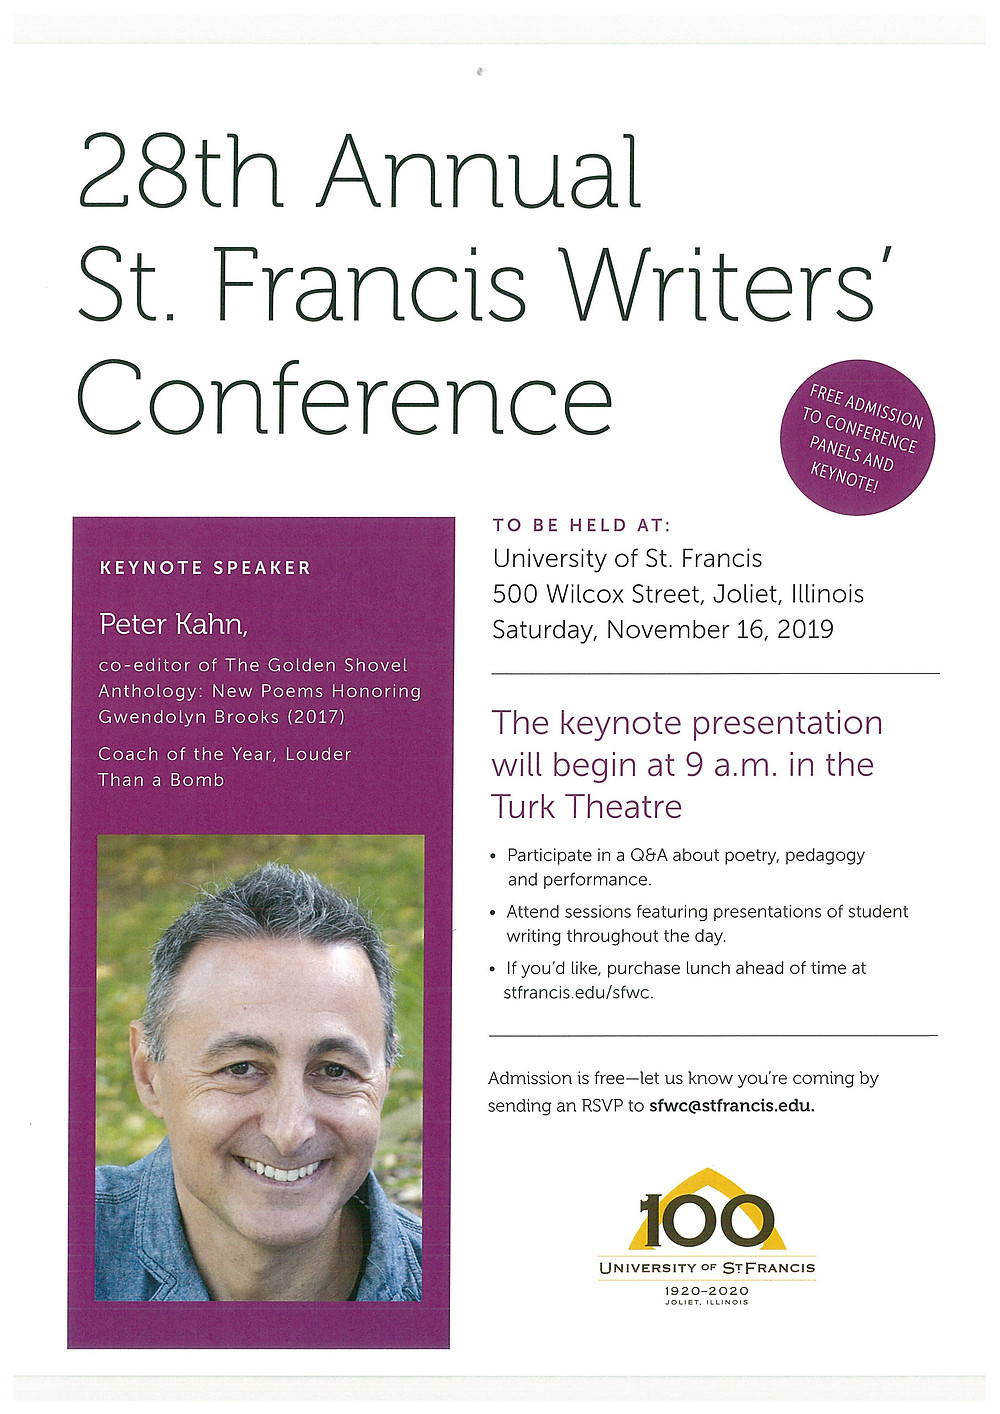 Flier courtesy of the University of St. Francis